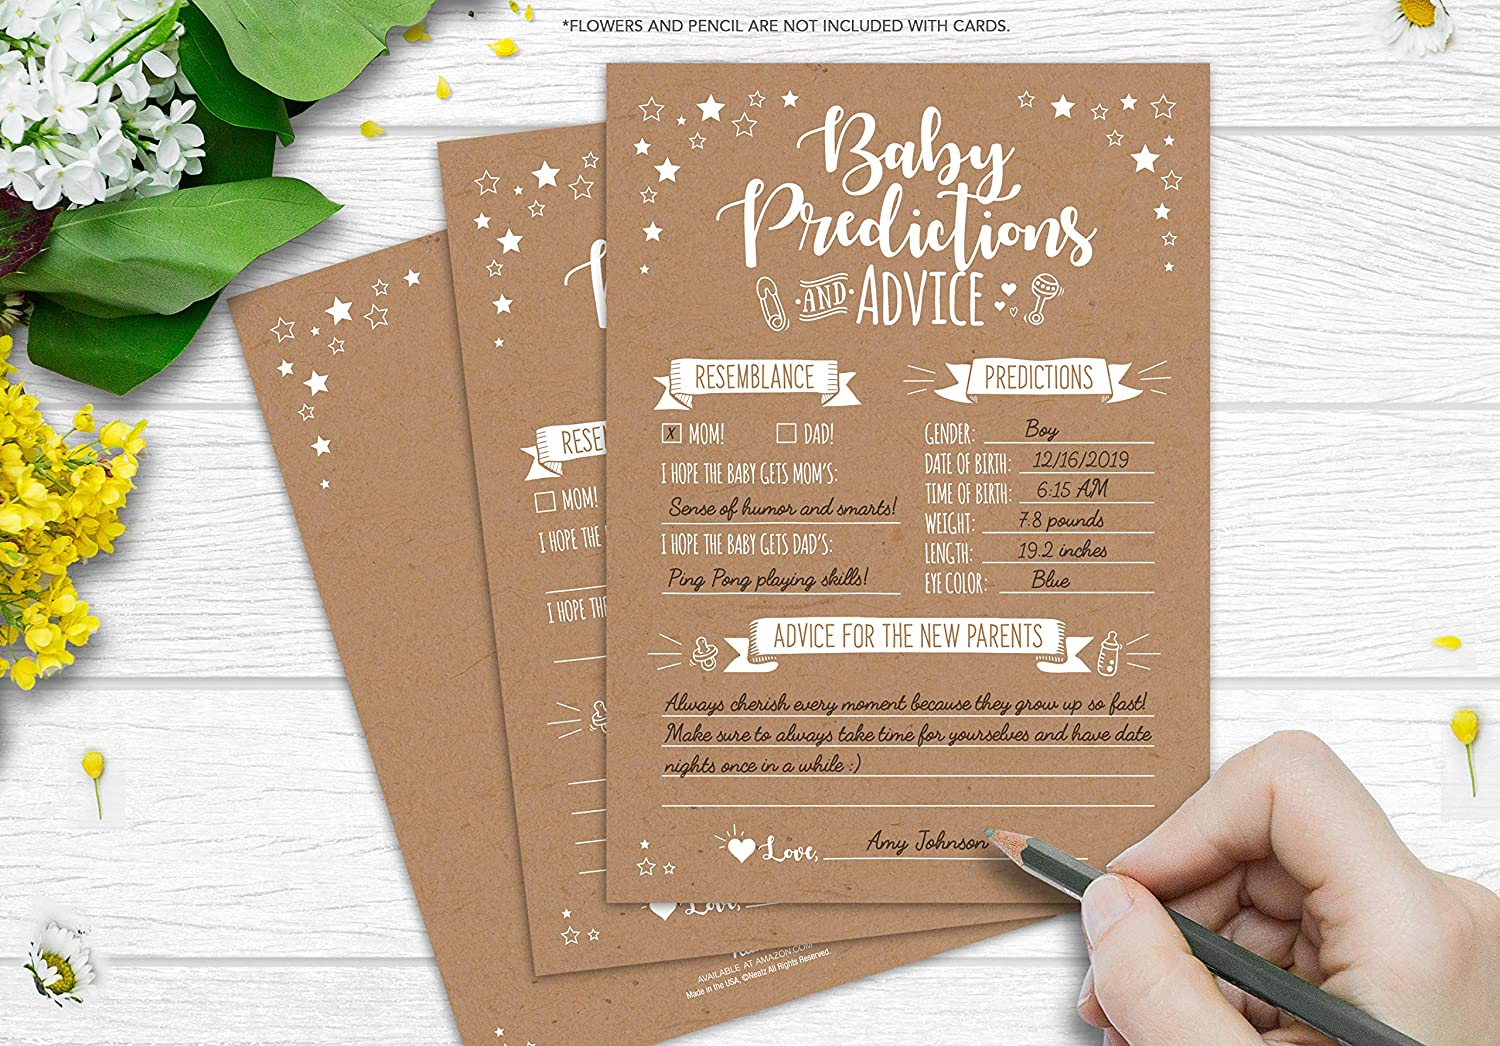 Baby Shower Decorations Gender Neutral Boy or Girl Baby Shower Favors 50 Rustic Baby Shower Prediction and Advice Cards Baby Shower Games